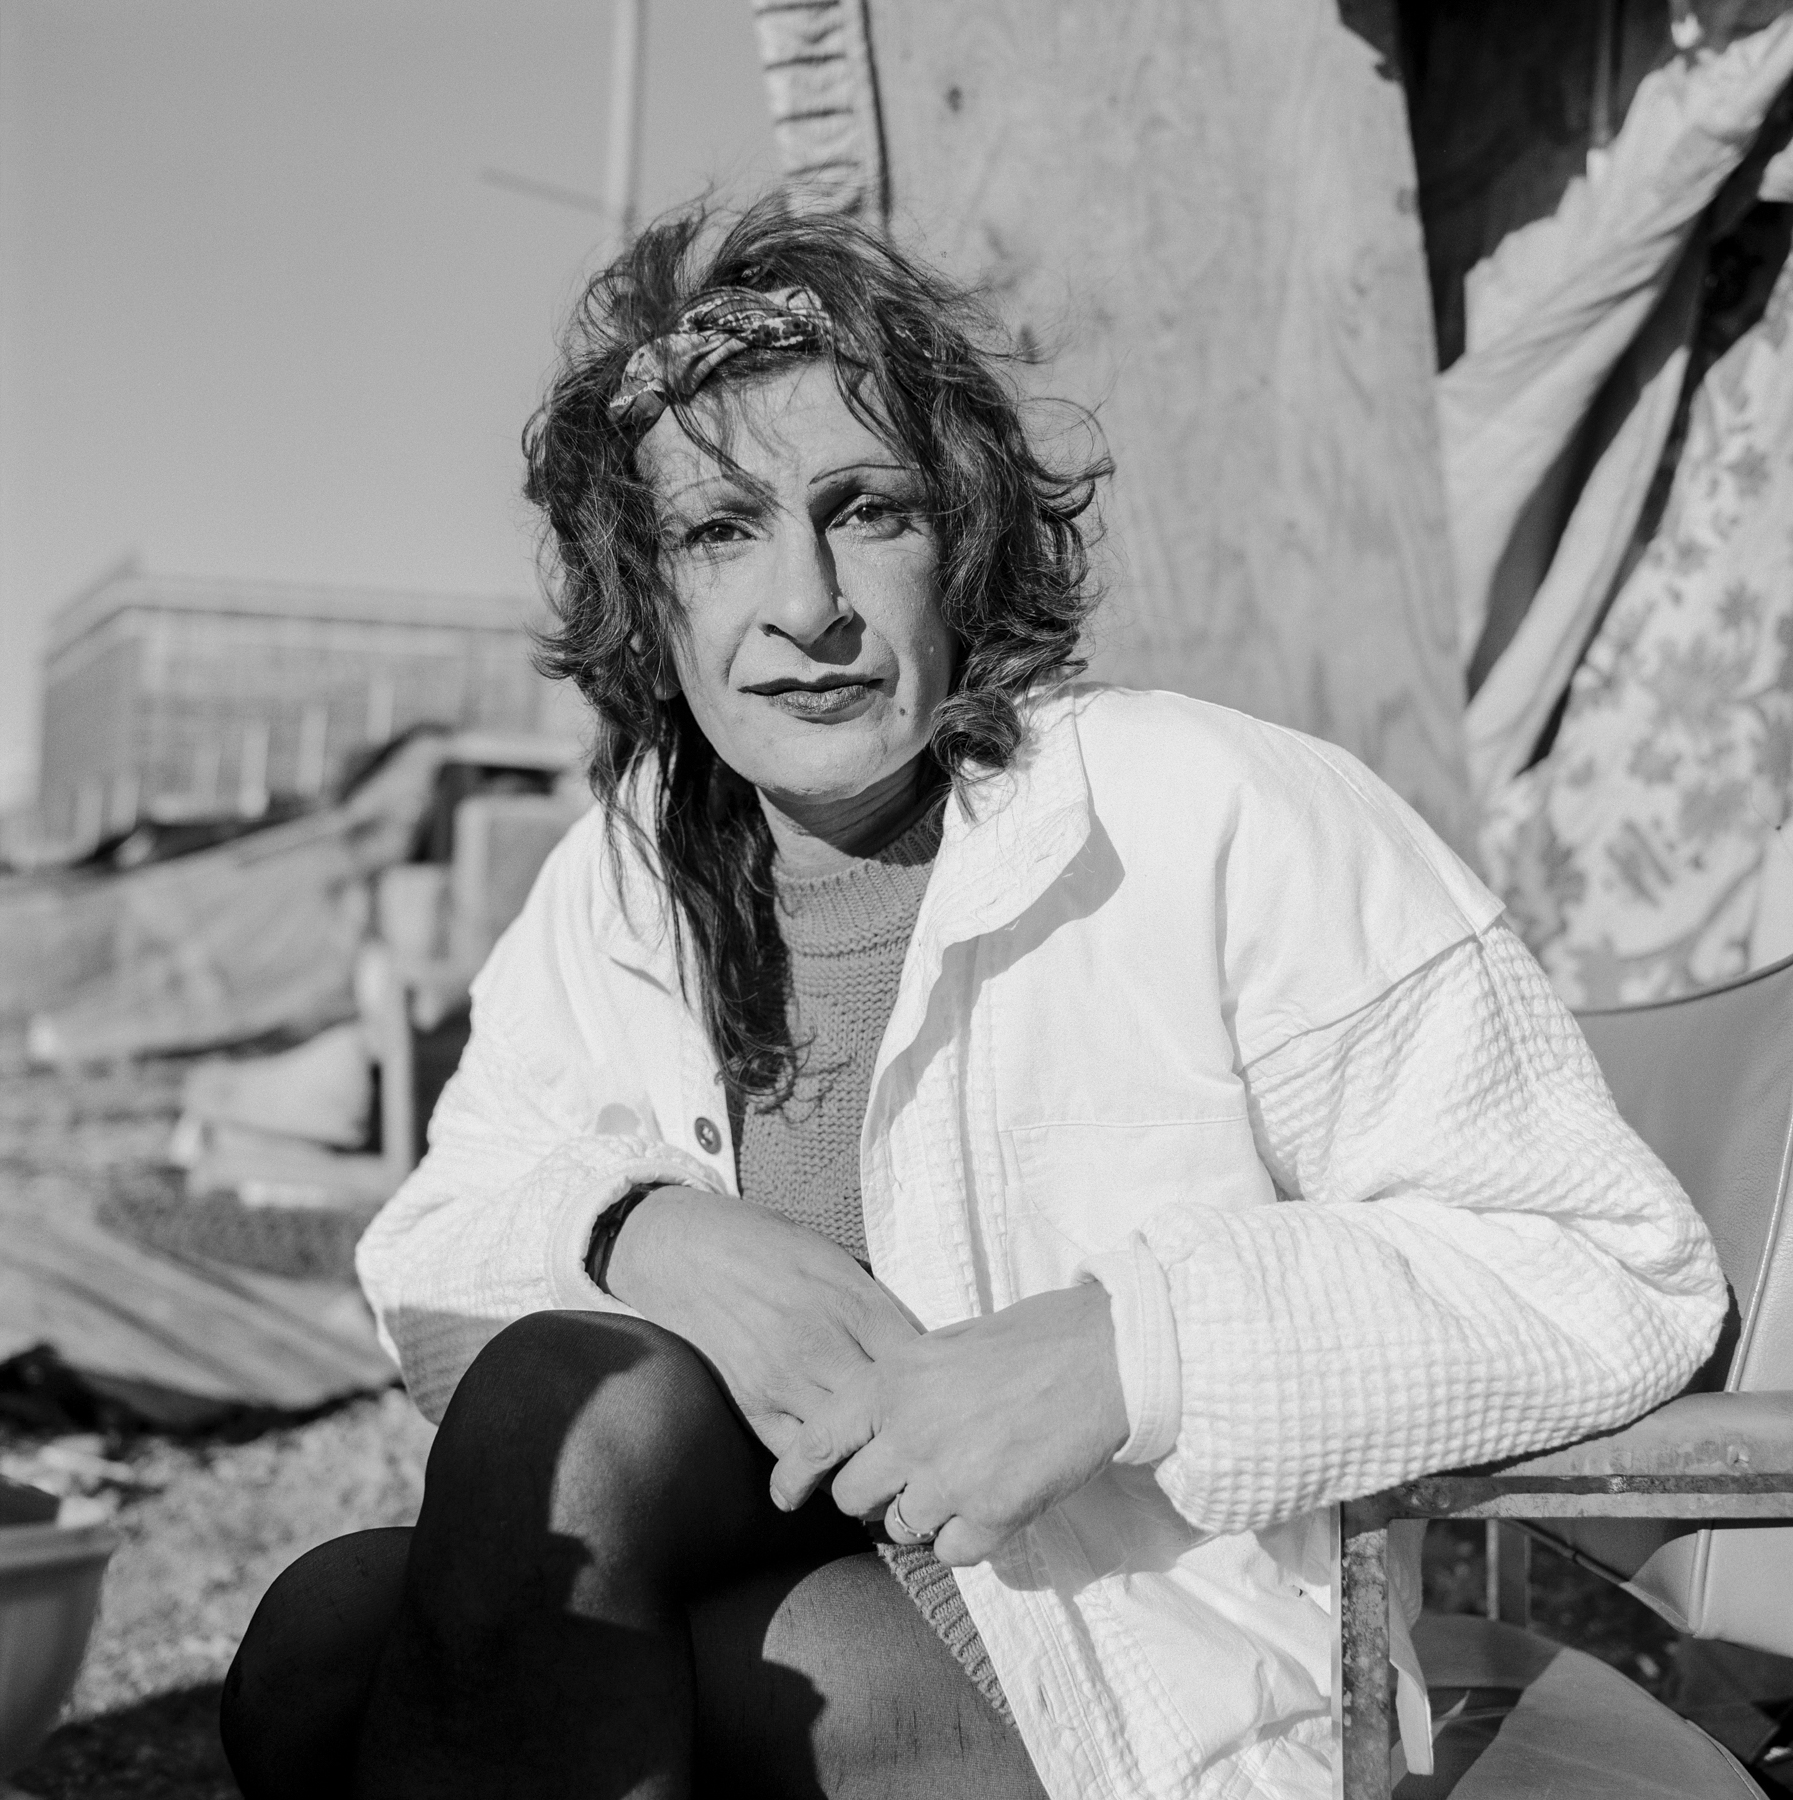 Sylvia Rivera at her Hudson riverfront home encampment in New York in 1996